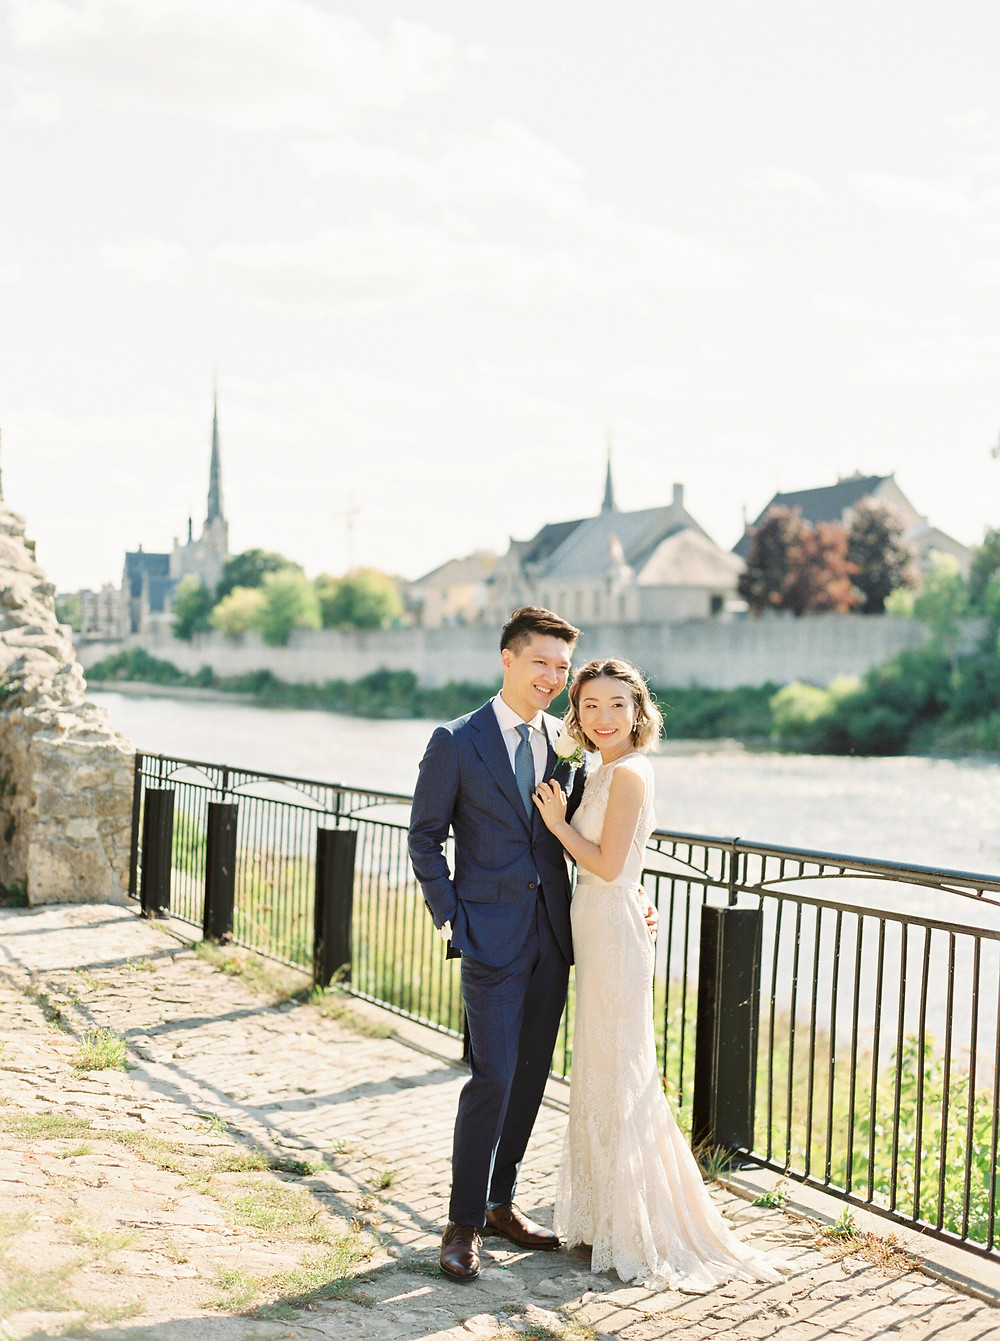 cambridge mill, elora mill, ontario wedding, wedding blog, fine art wedding, fine art blog, canadian wedding magazine, print magazine, ancaster old mill, ontario wedding venue, fine art photography, wedding dress, bride dress, wedding ring, groom suit, groom inspo, bride inspo, waterfront wedding venue, canadian weddings, style me pretty, magnolia rouge, once wed, the white wren, green wedding shoes, martha stewart weddings, tale of tulle